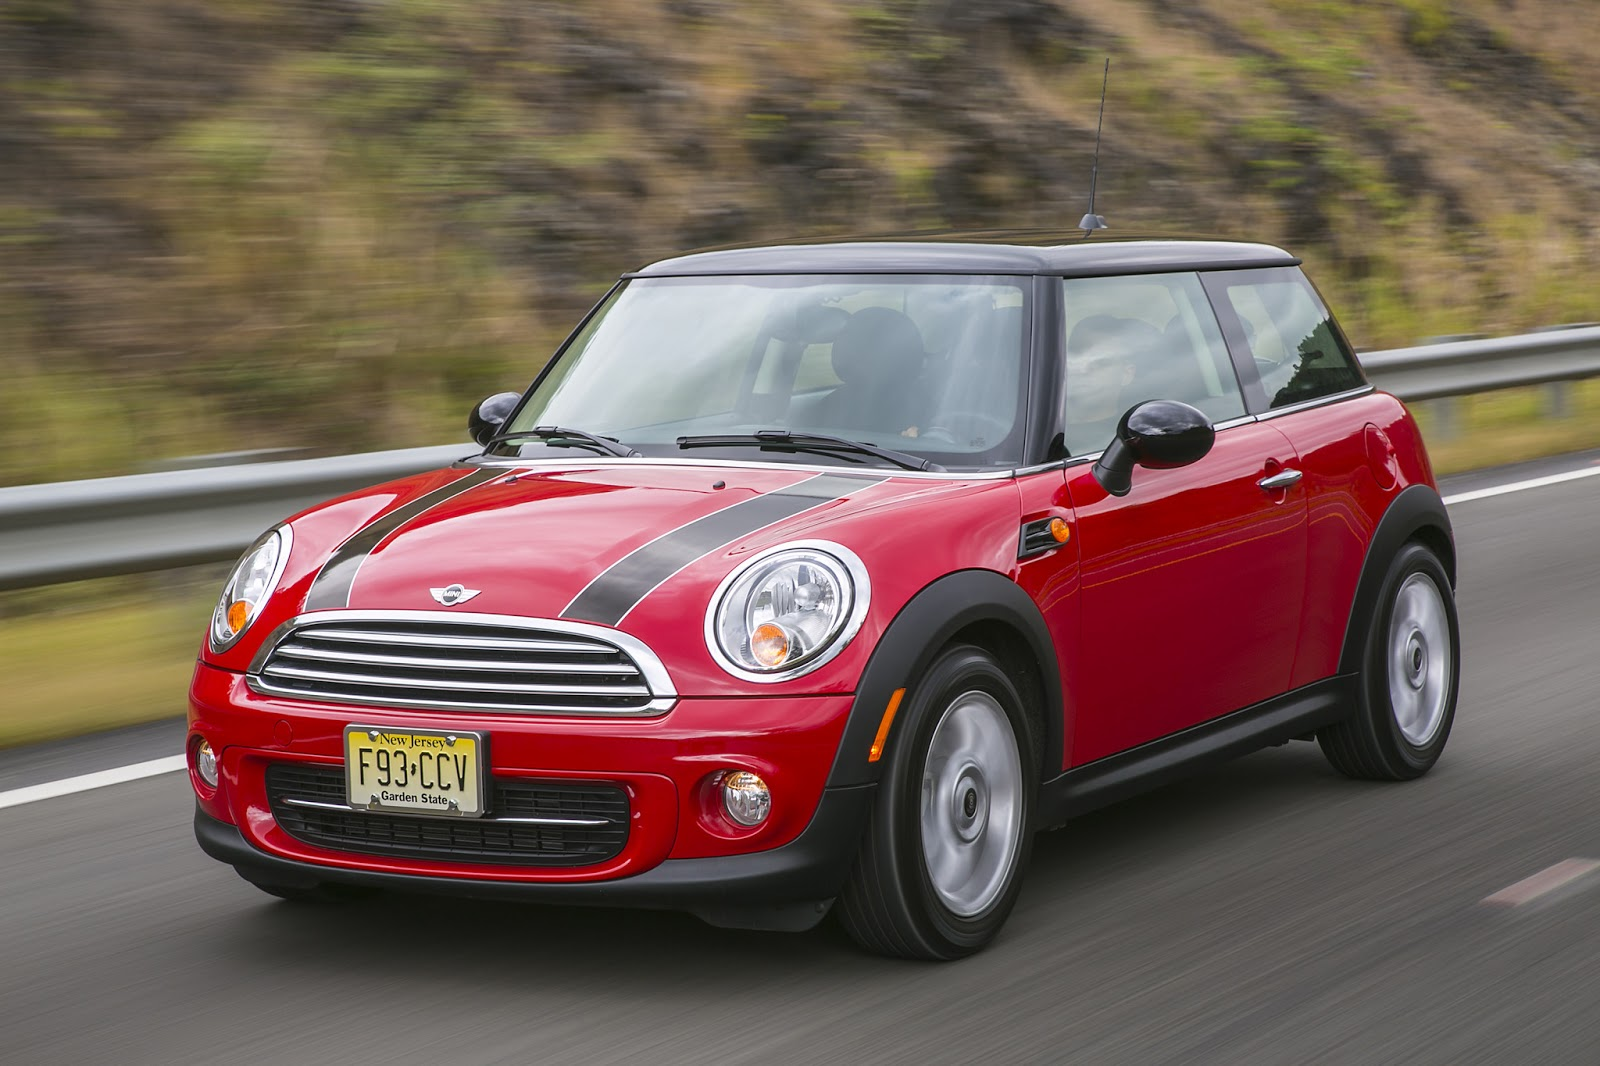 GirlDriver, USA: Mini Cooper Me